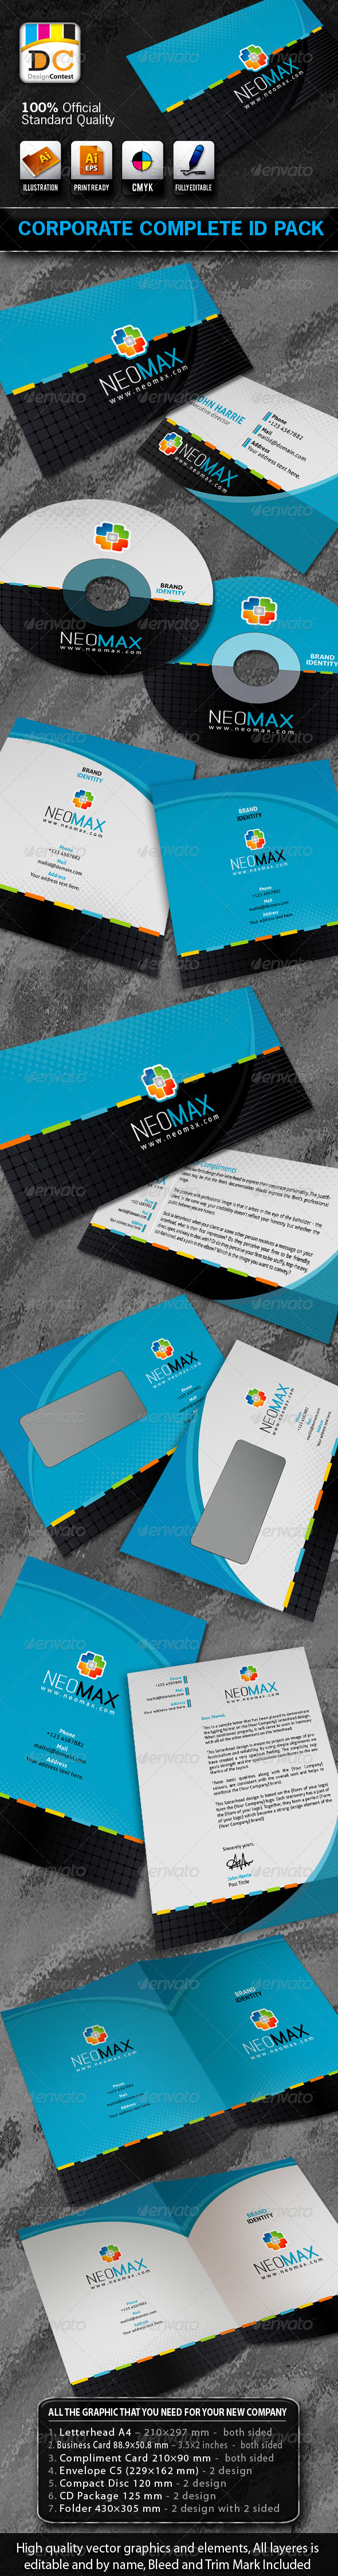 Neo Max Corporate Complete Id Pack  Internet Logo Business Cards